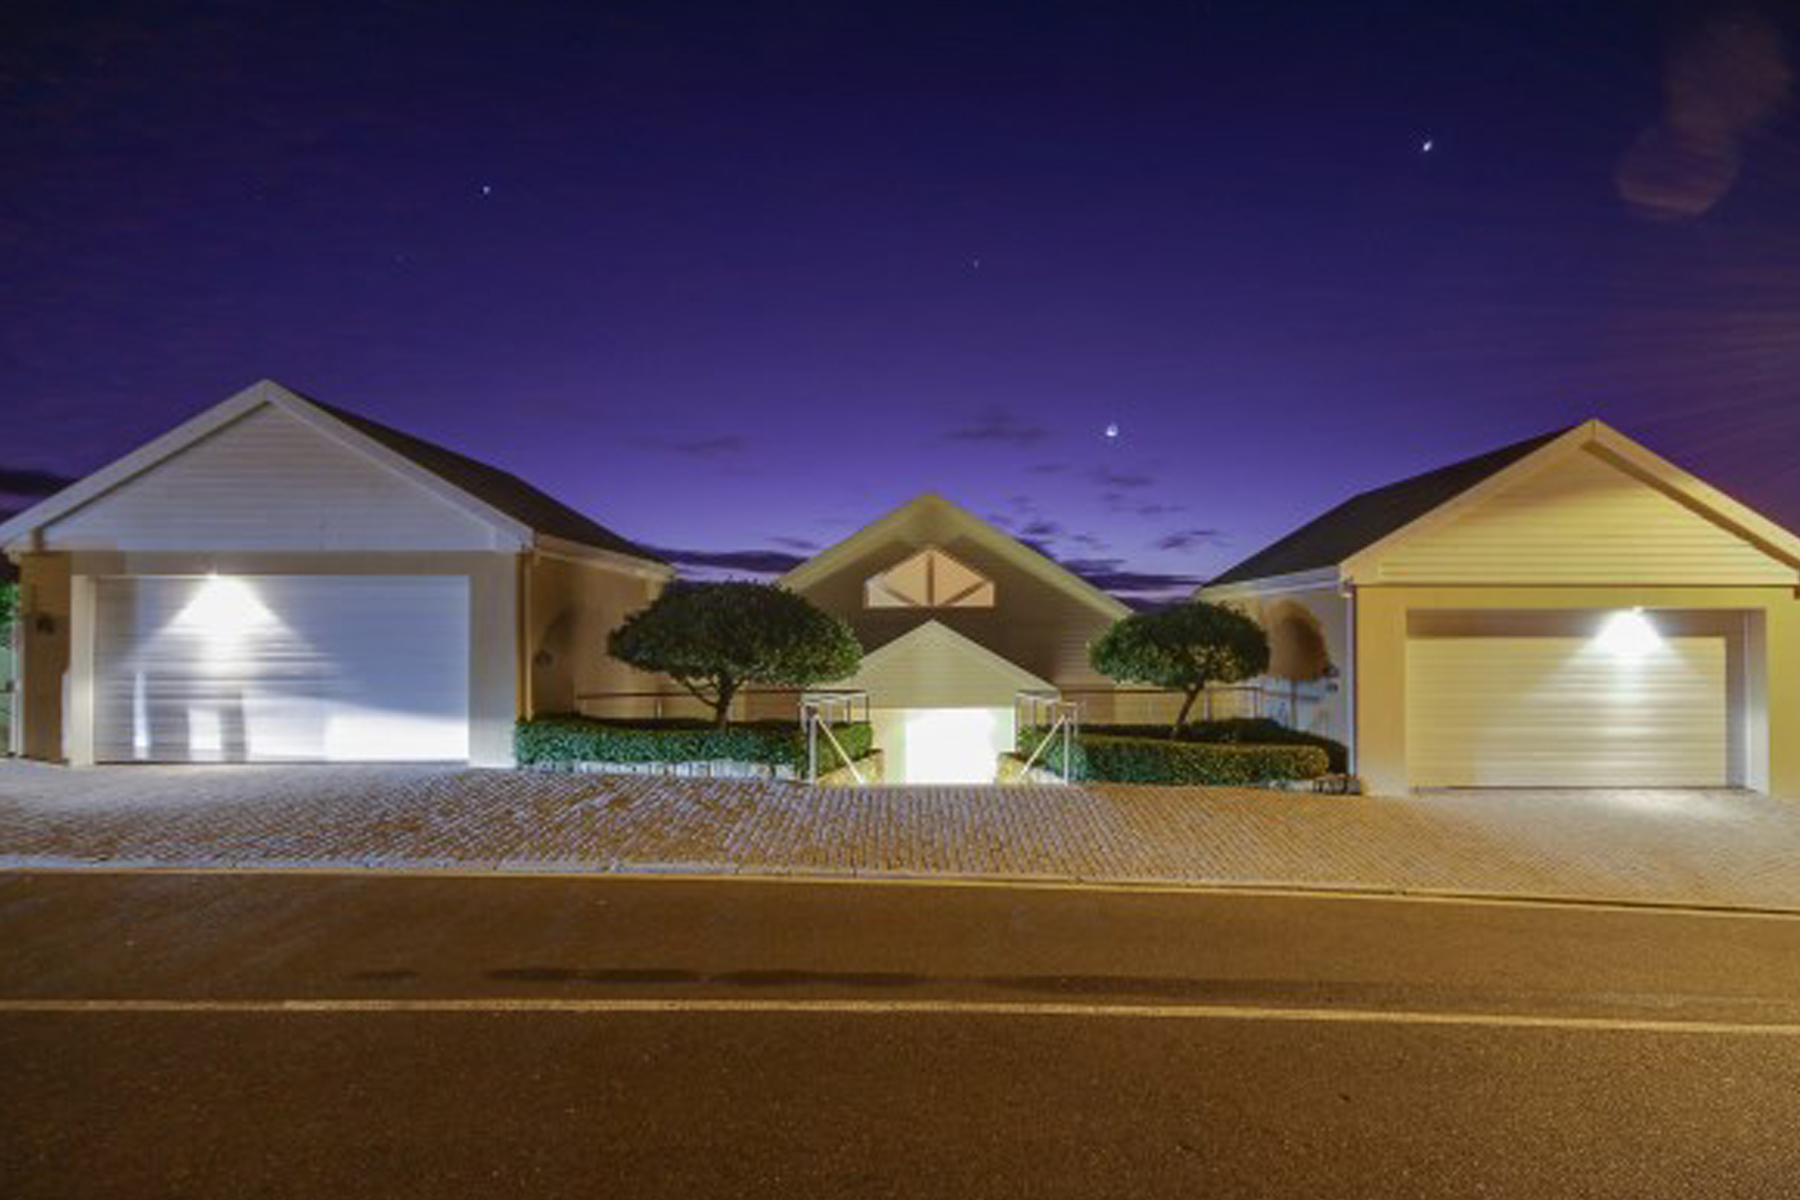 Single Family Home for Sale at Camps Bay Camps Bay, Western Cape, South Africa